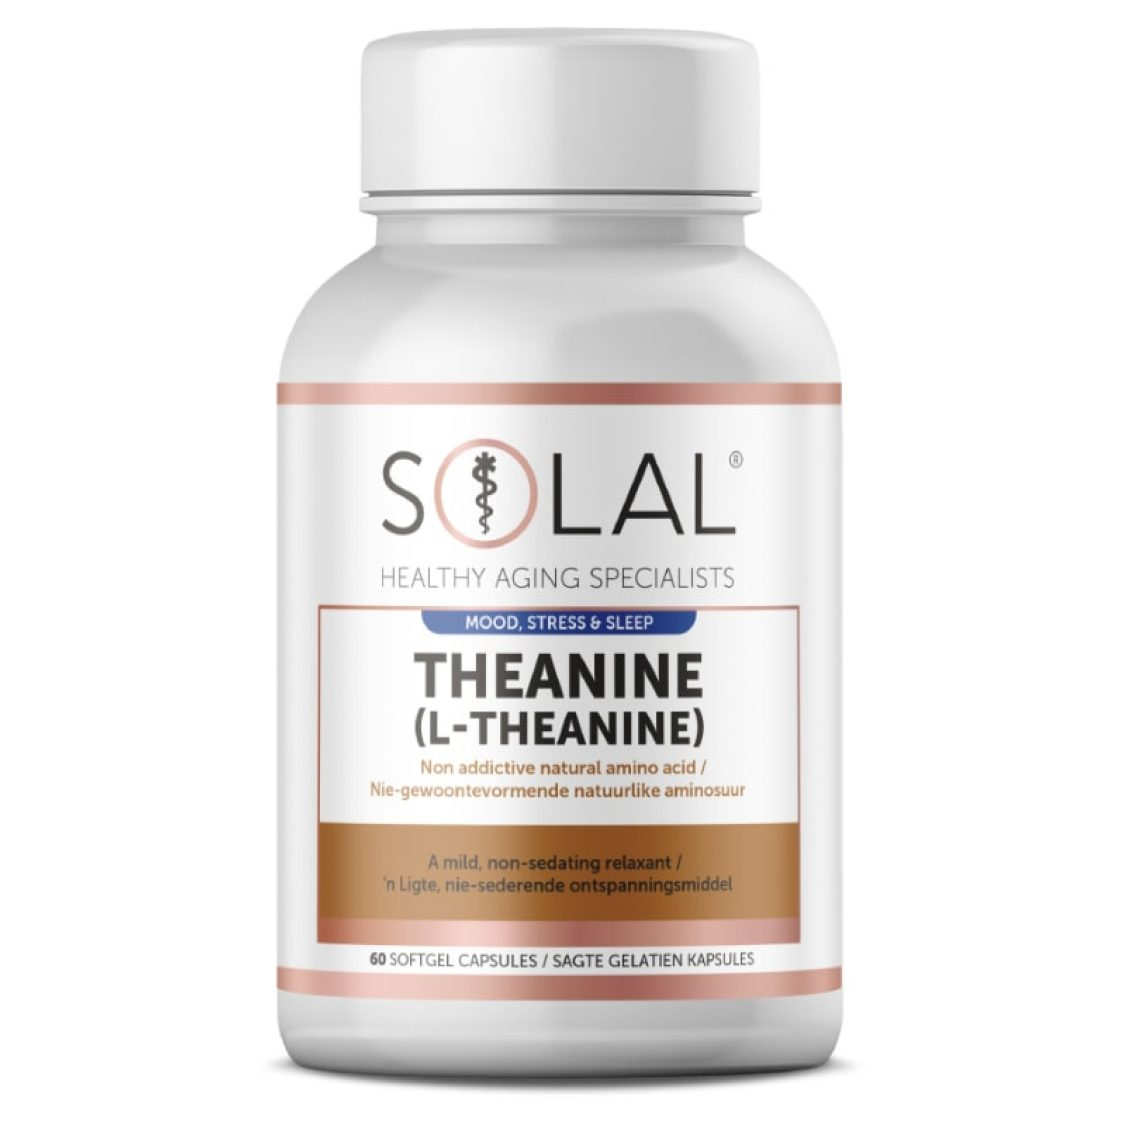 Solal - Theanine (L Theanine)